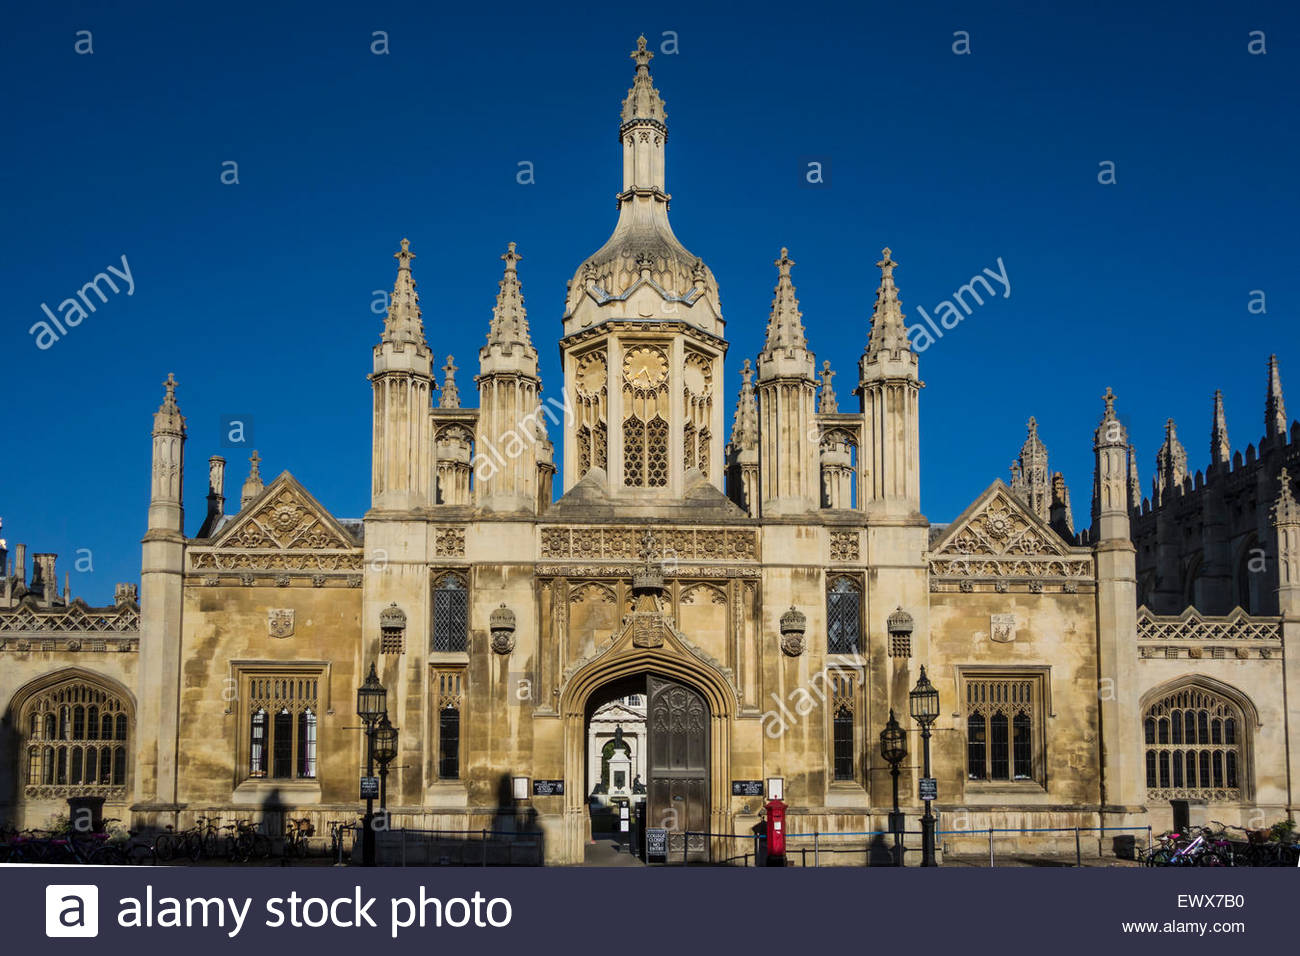 Kings College, Cambridge entrance gate early on a summer morning with a vivid clear blue sky - Stock Image